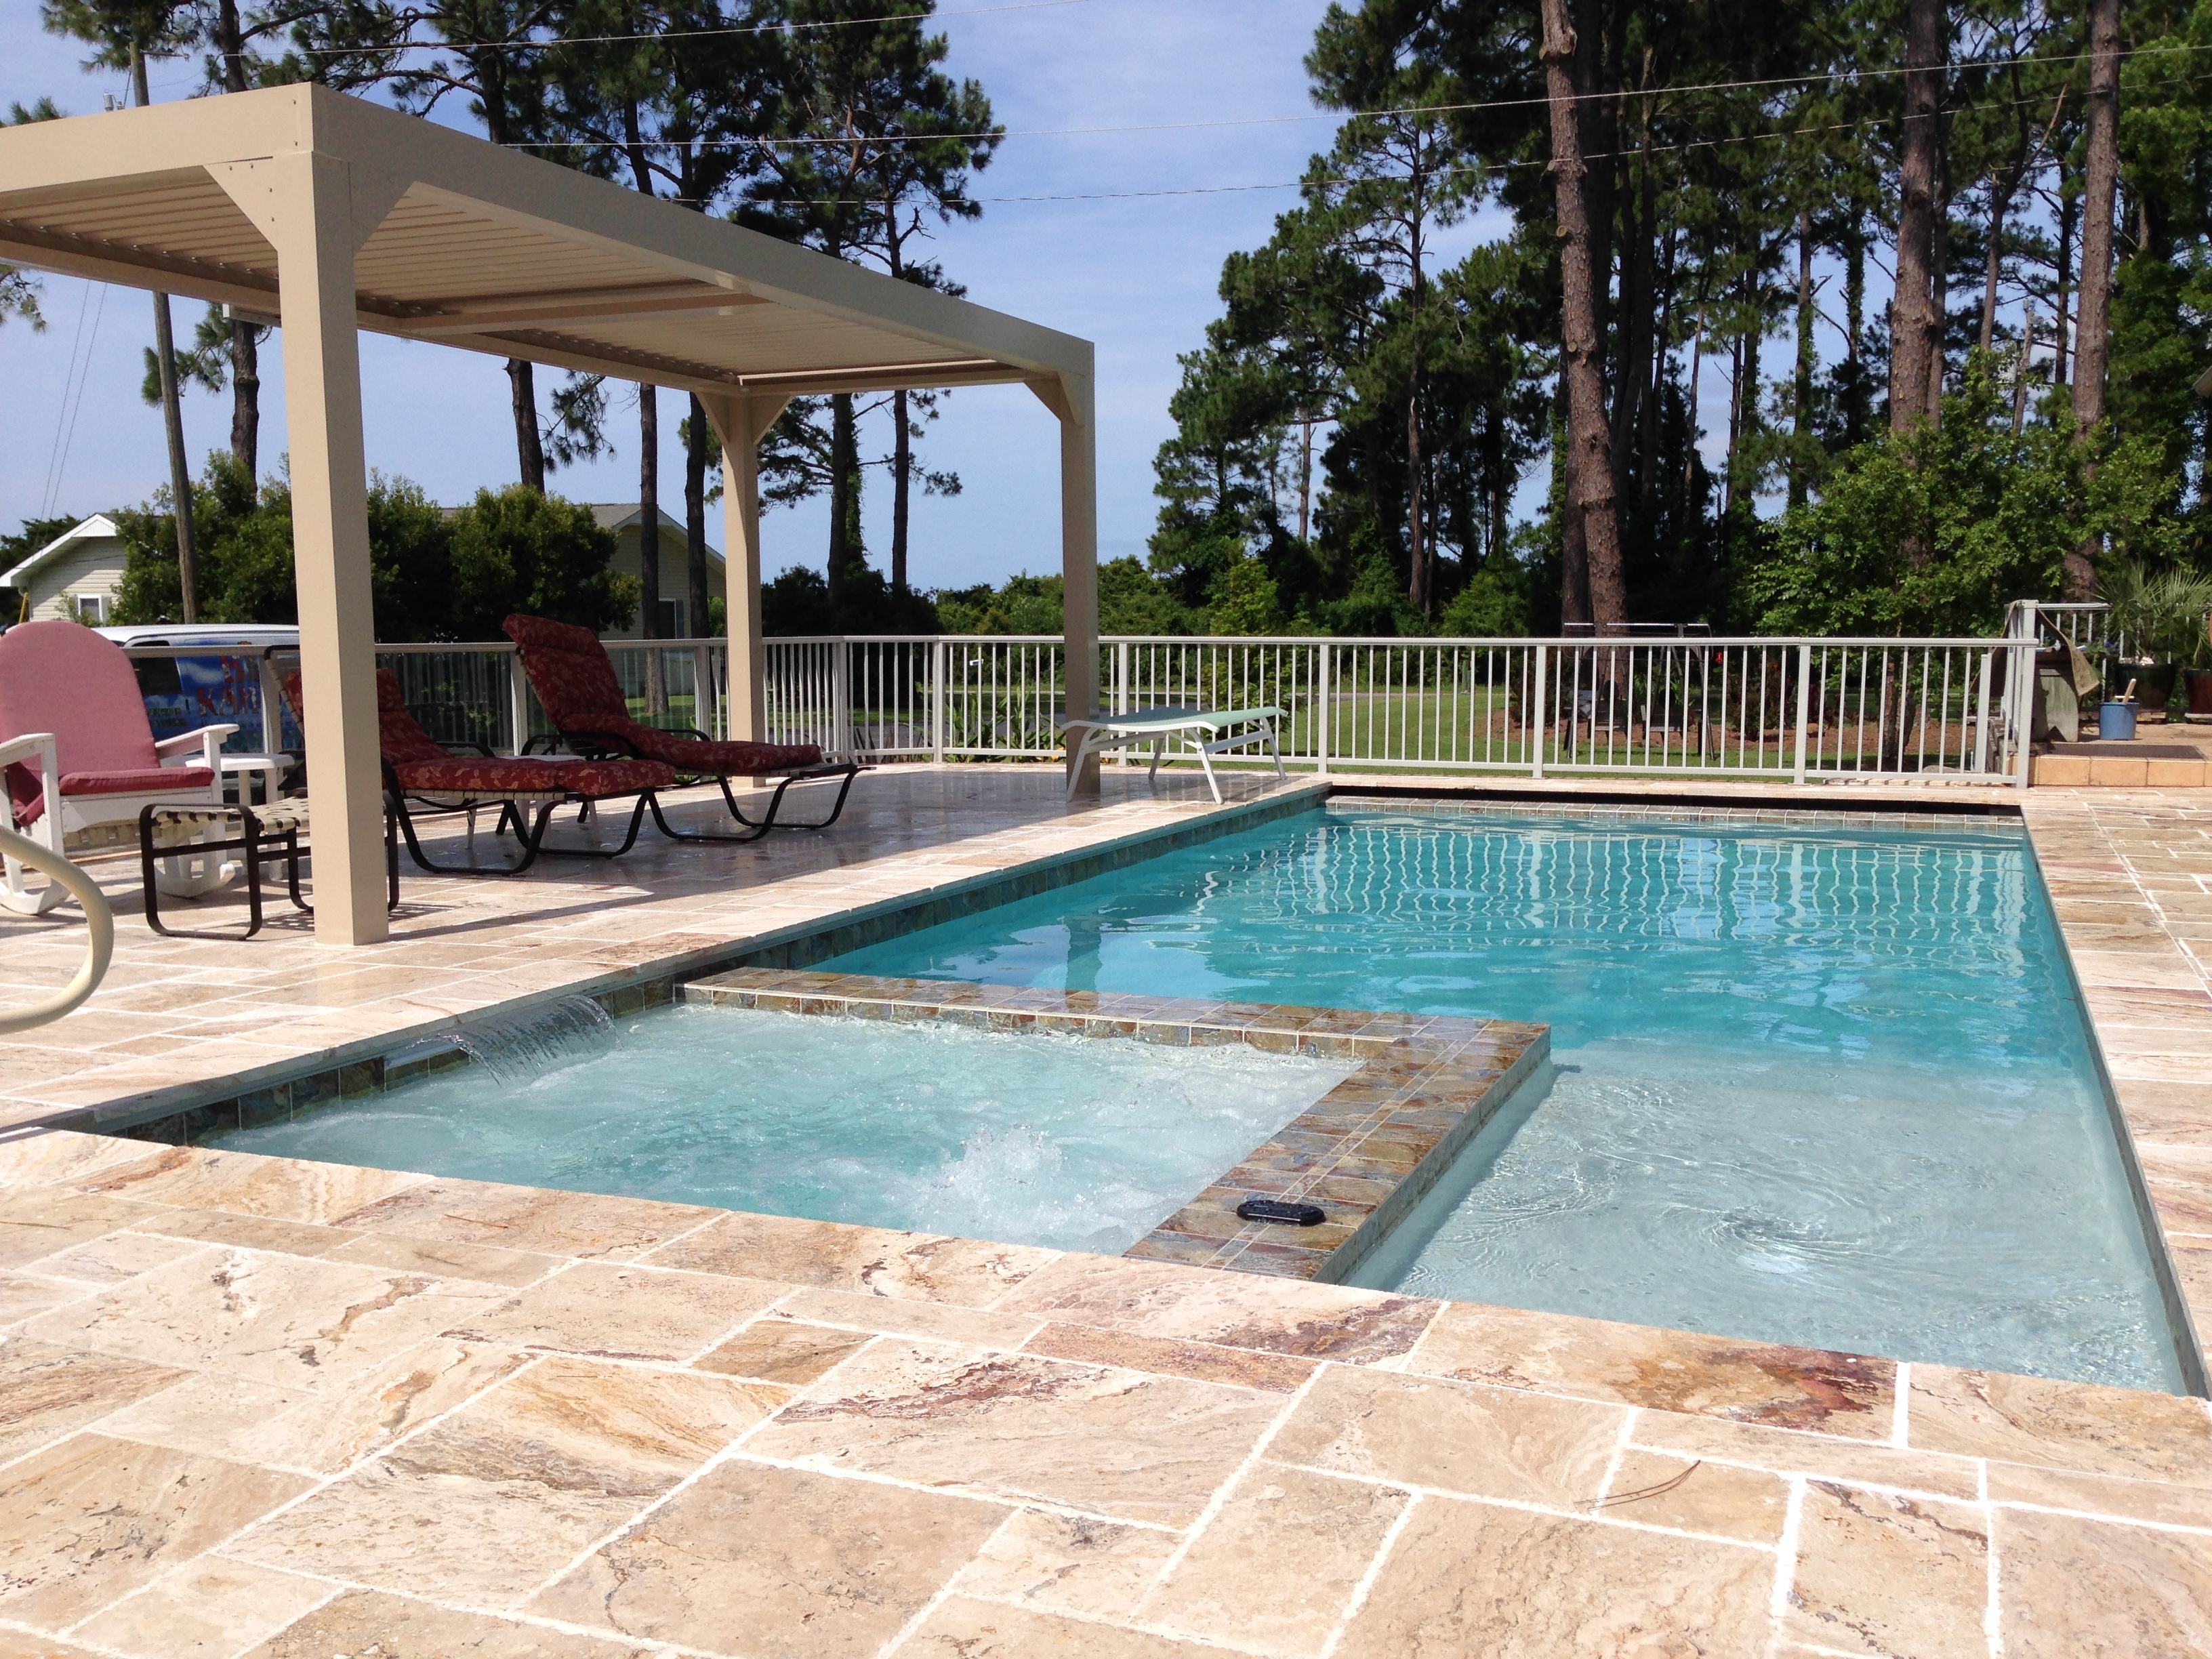 Pool complete with Pergola with opening and closing vanes for shade